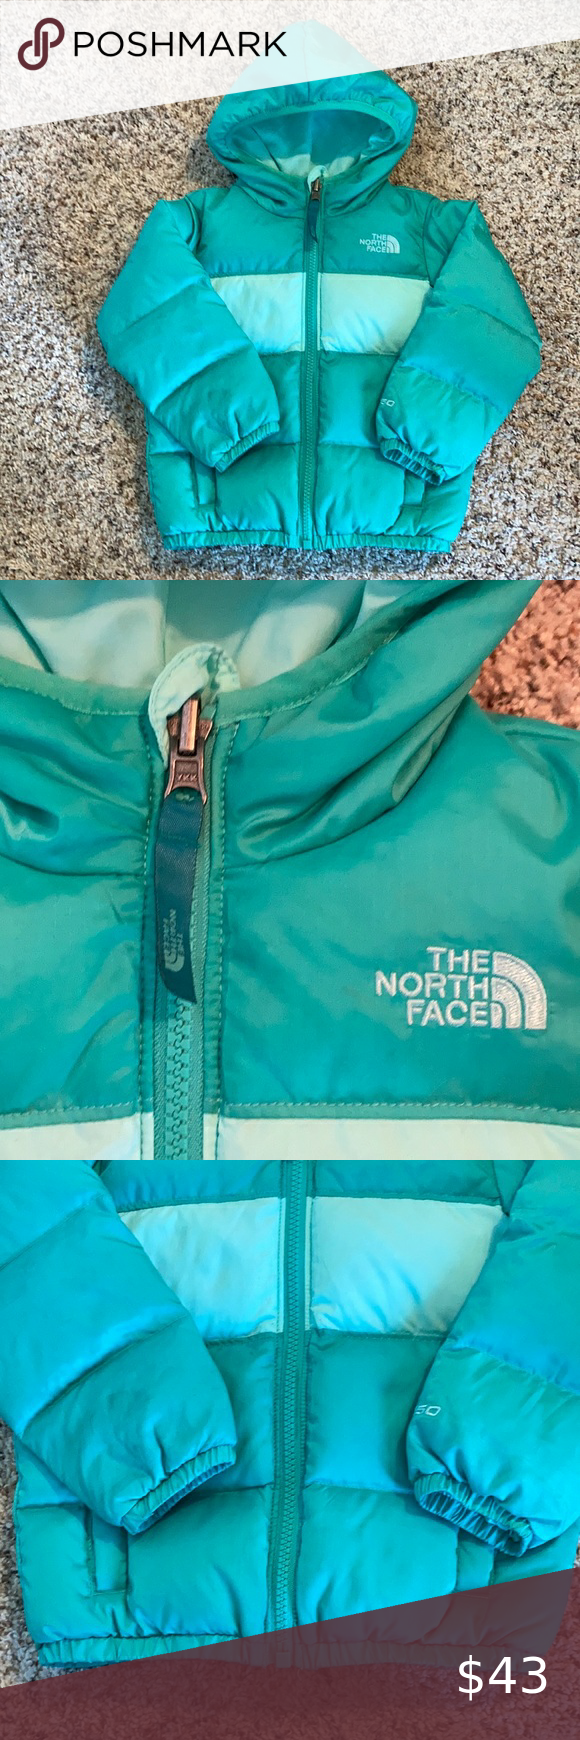 North Face Toddler Puffer Coat Nwot Size 2t No Sewn On Tags On Reversible Nf Coats Teal Reversible Toddler Puffer Co Puffer Coat Clothes Design Kids Jacket [ 1740 x 580 Pixel ]